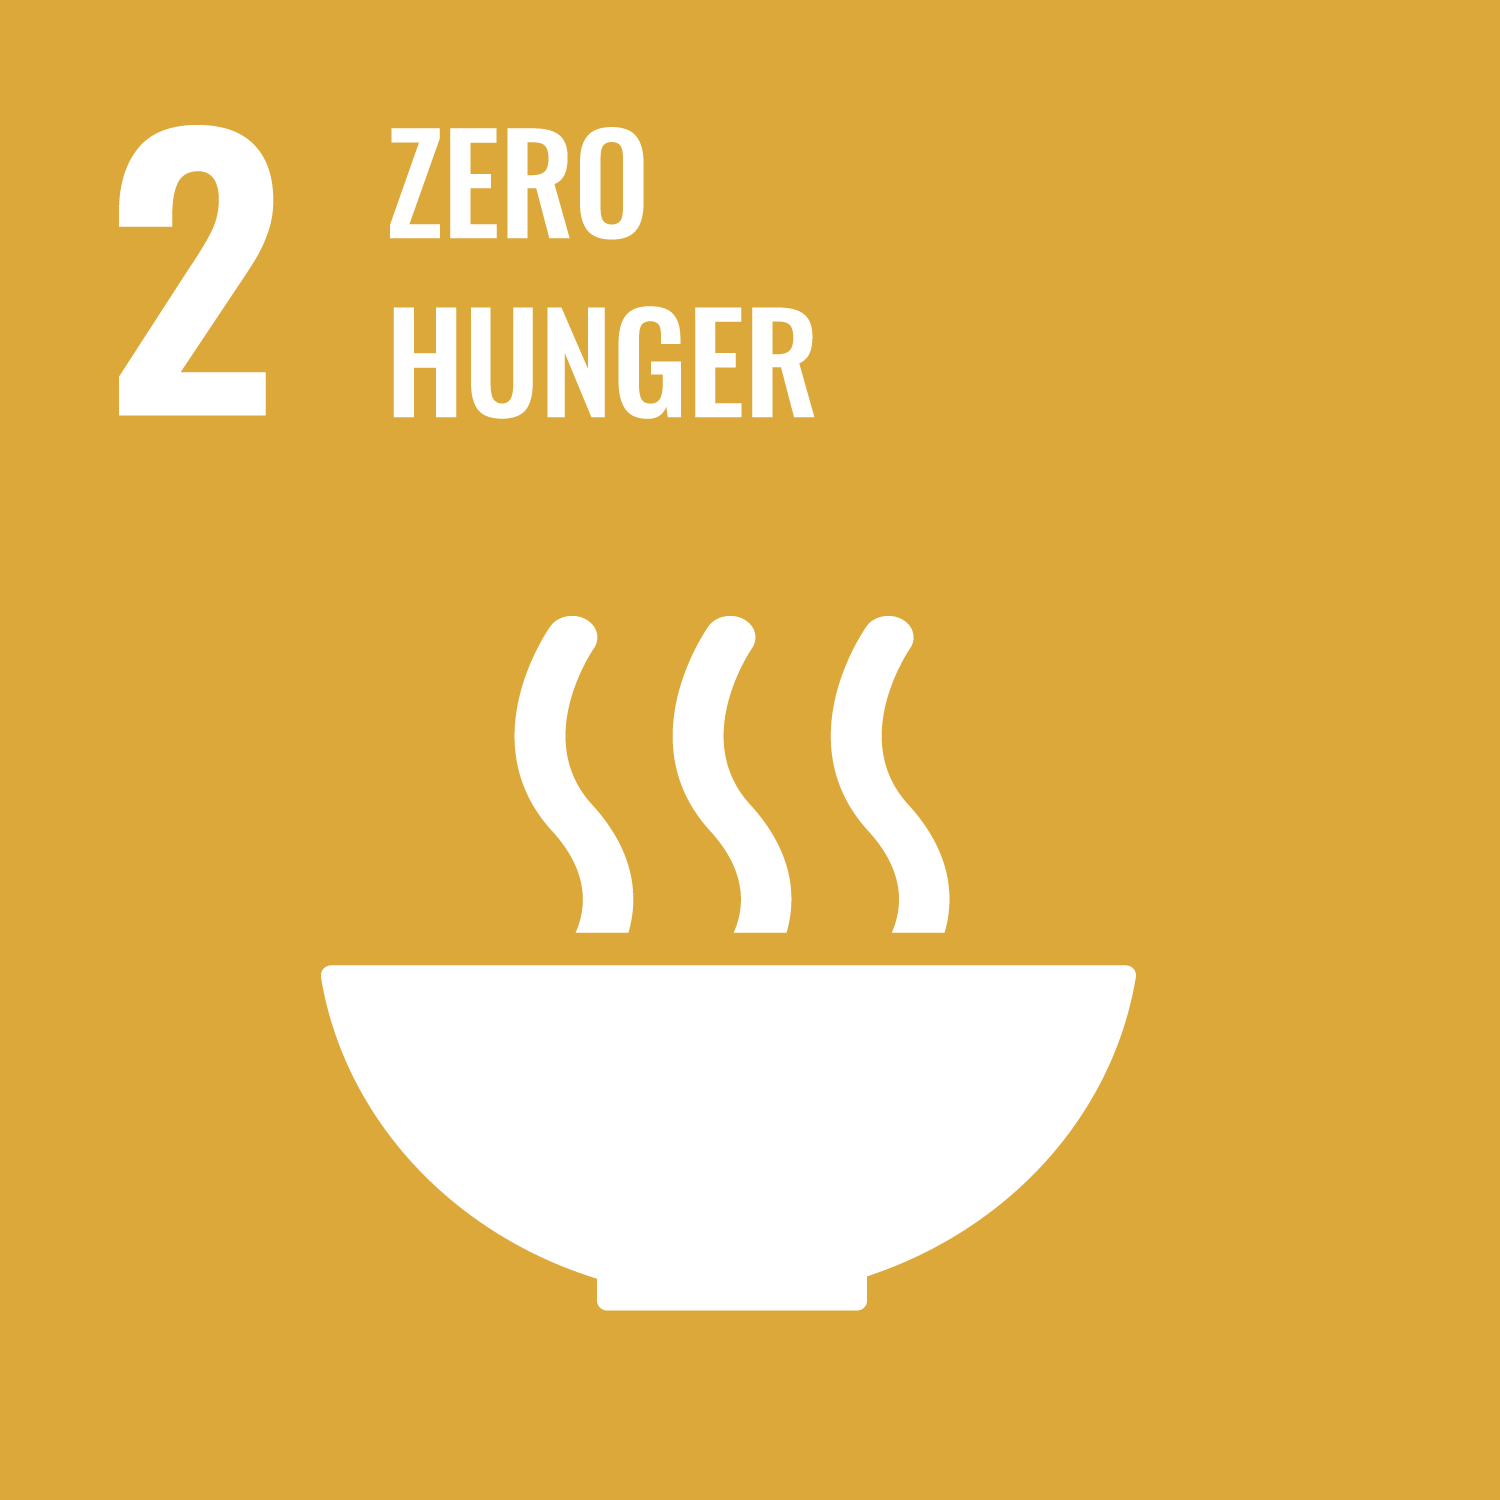 Sustainable Development Goal 2. End hunger, achieve food security and improved nutrition and promote sustainable agriculture.